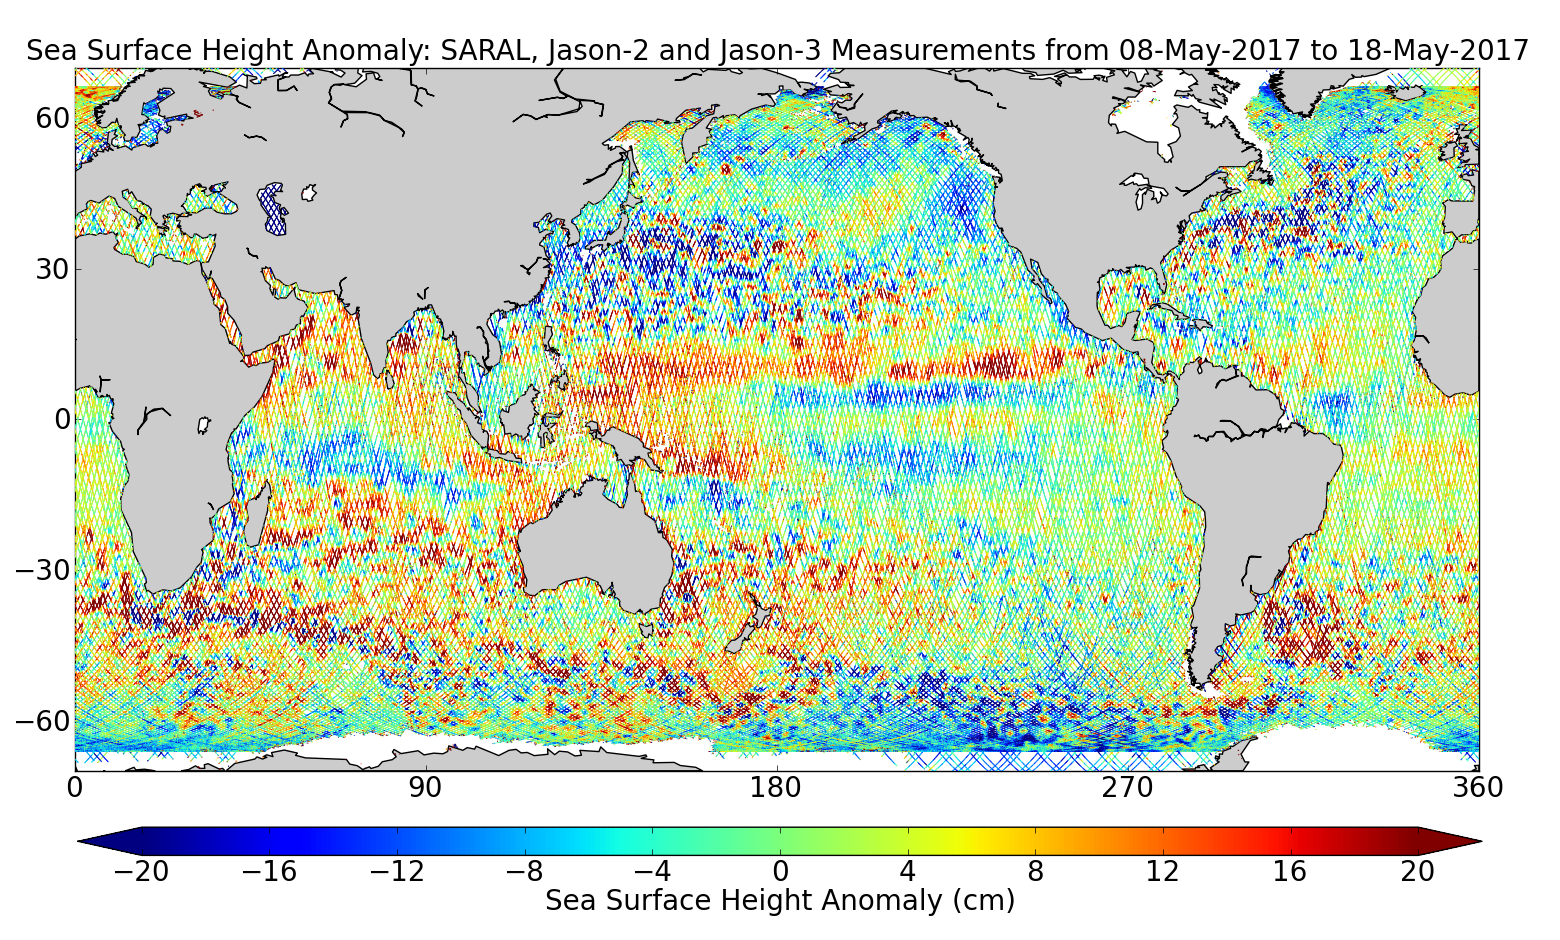 Sea Surface Height Anomaly: SARAL, Jason-2 and Jason-3 Measurements from 08-May-2017 to 18-May-2017